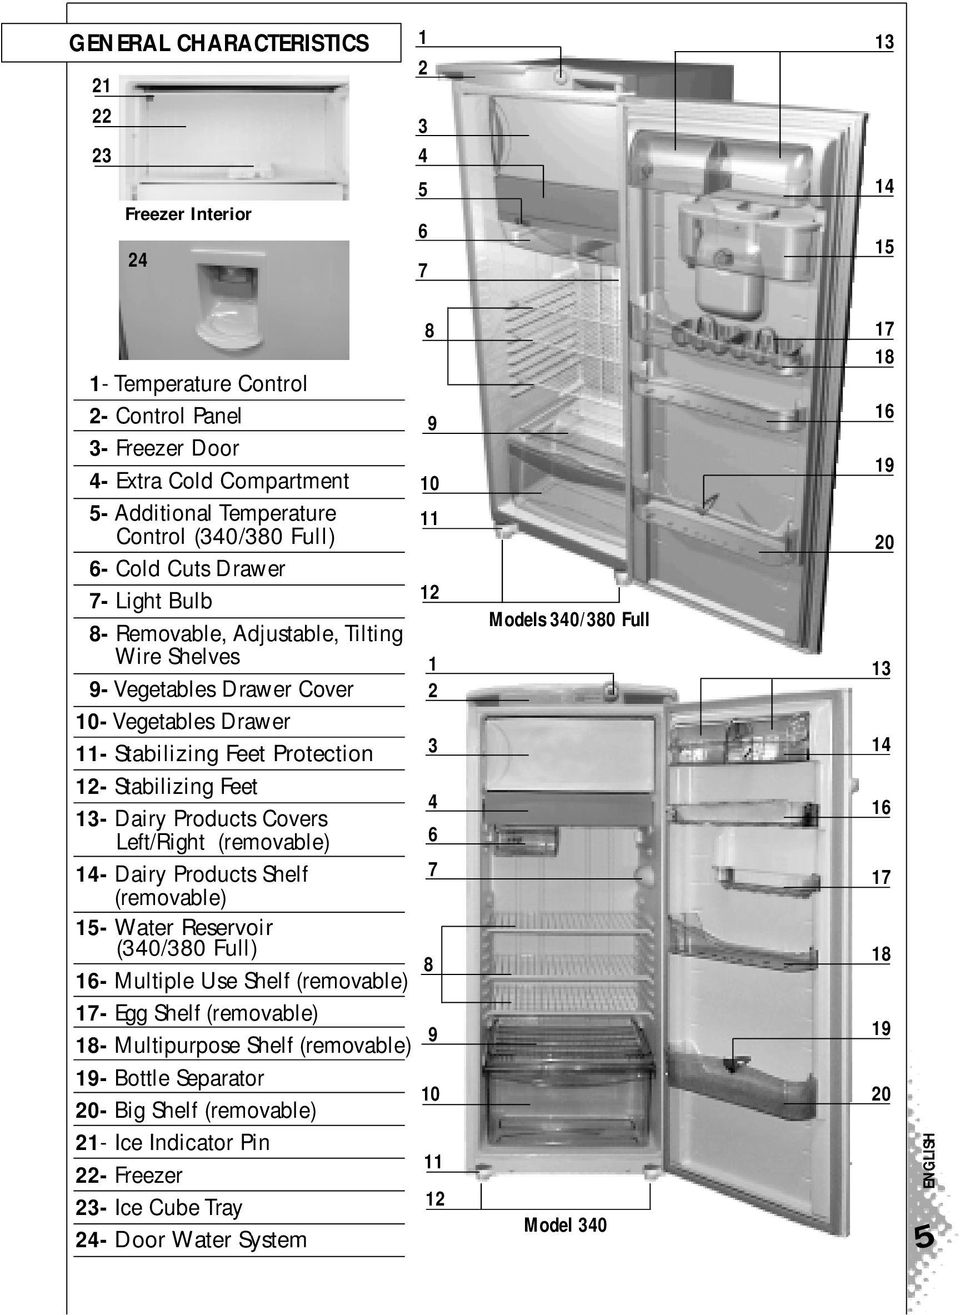 13- Dairy Products Covers Left/Right (removable) 14- Dairy Products Shelf (removable) 15- Water Reservoir (340/380 Full) 16- Multiple Use Shelf (removable) 17- Egg Shelf (removable) 18- Multipurpose